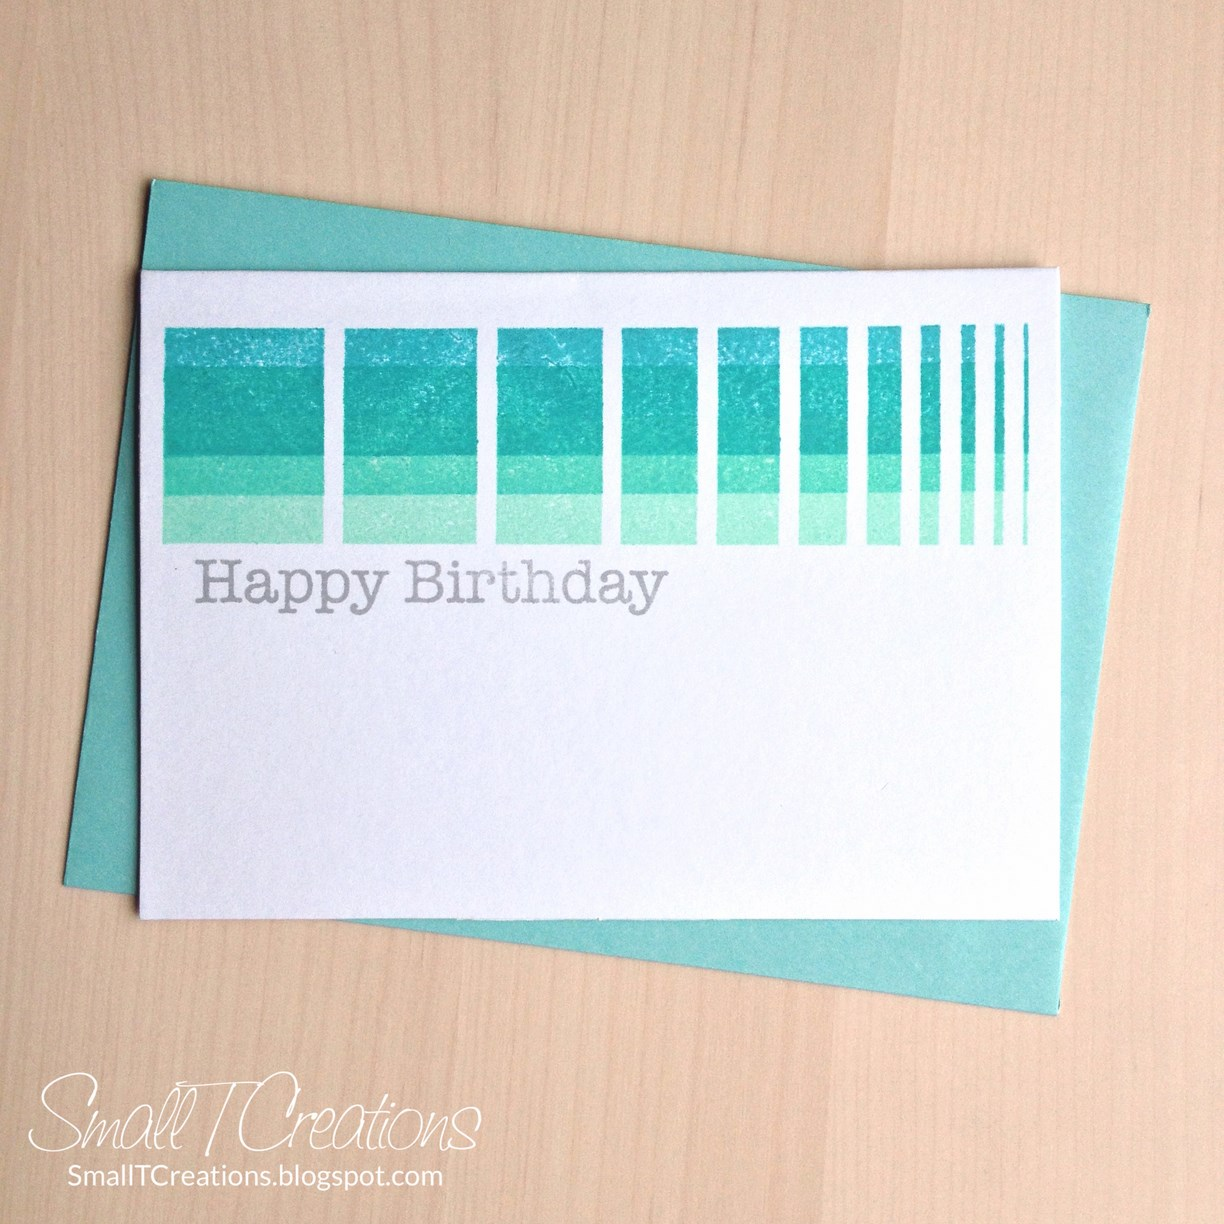 Graphic Ombre Birthday Card | Small T Creations